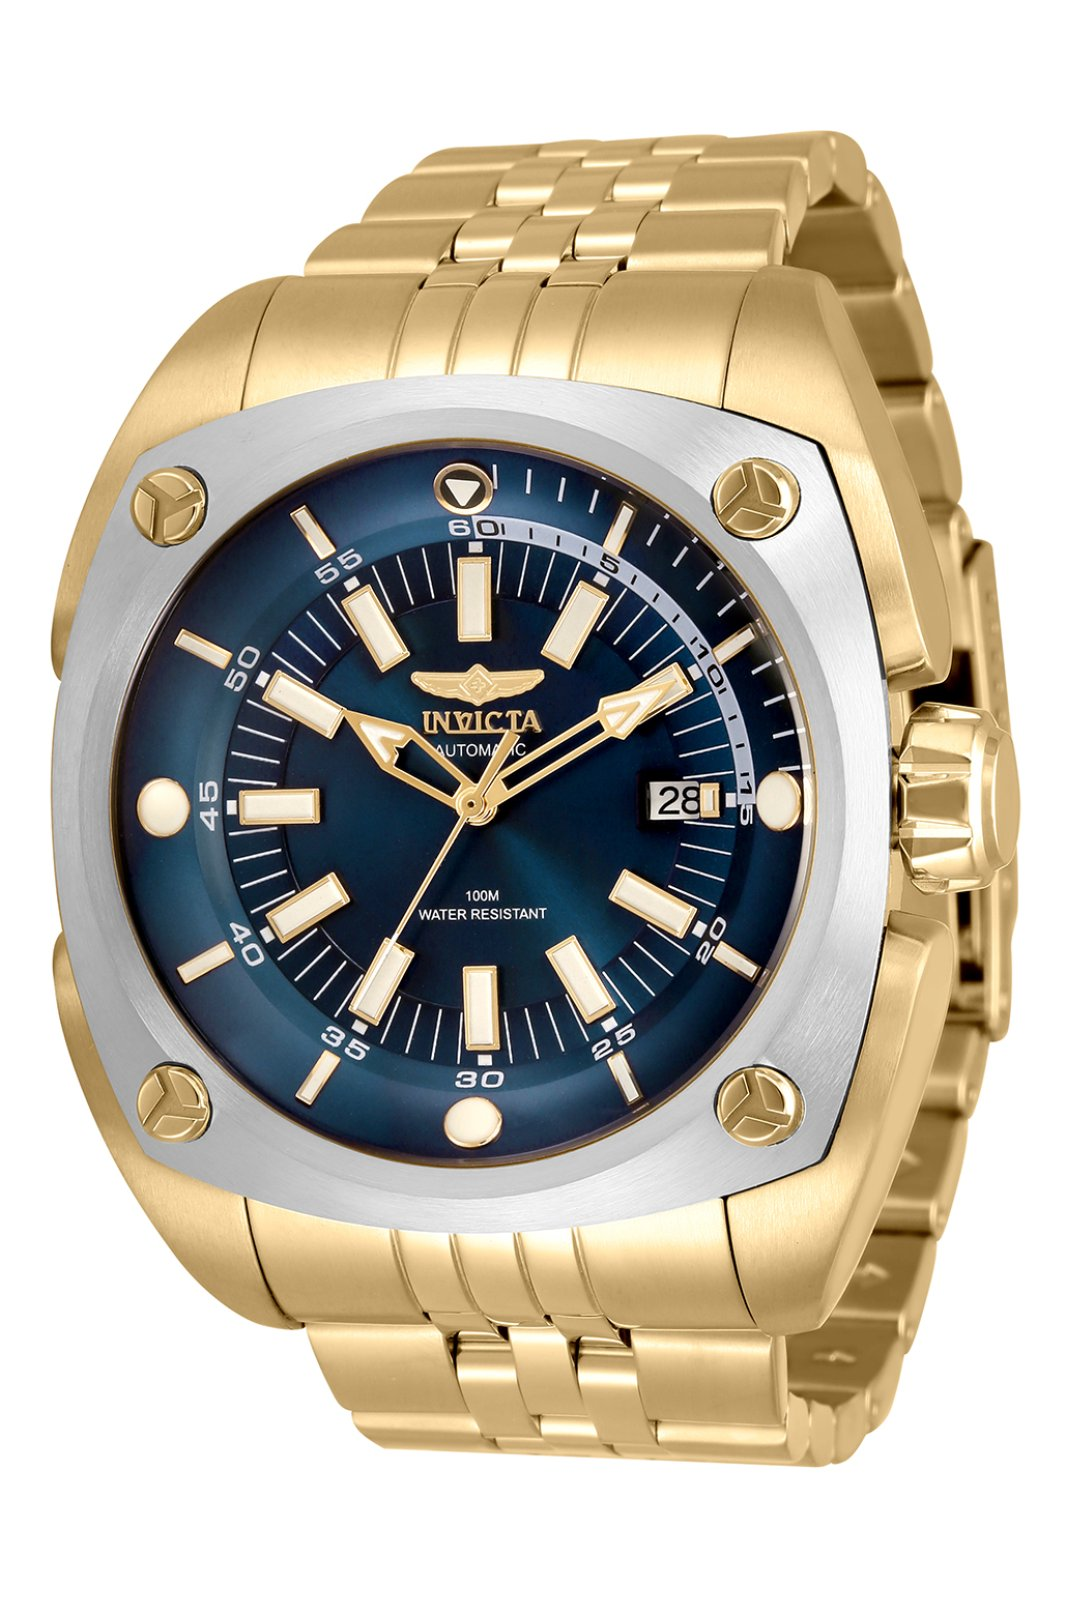 Invicta Reserve 32065 Men's Automatic Watch - 48mm